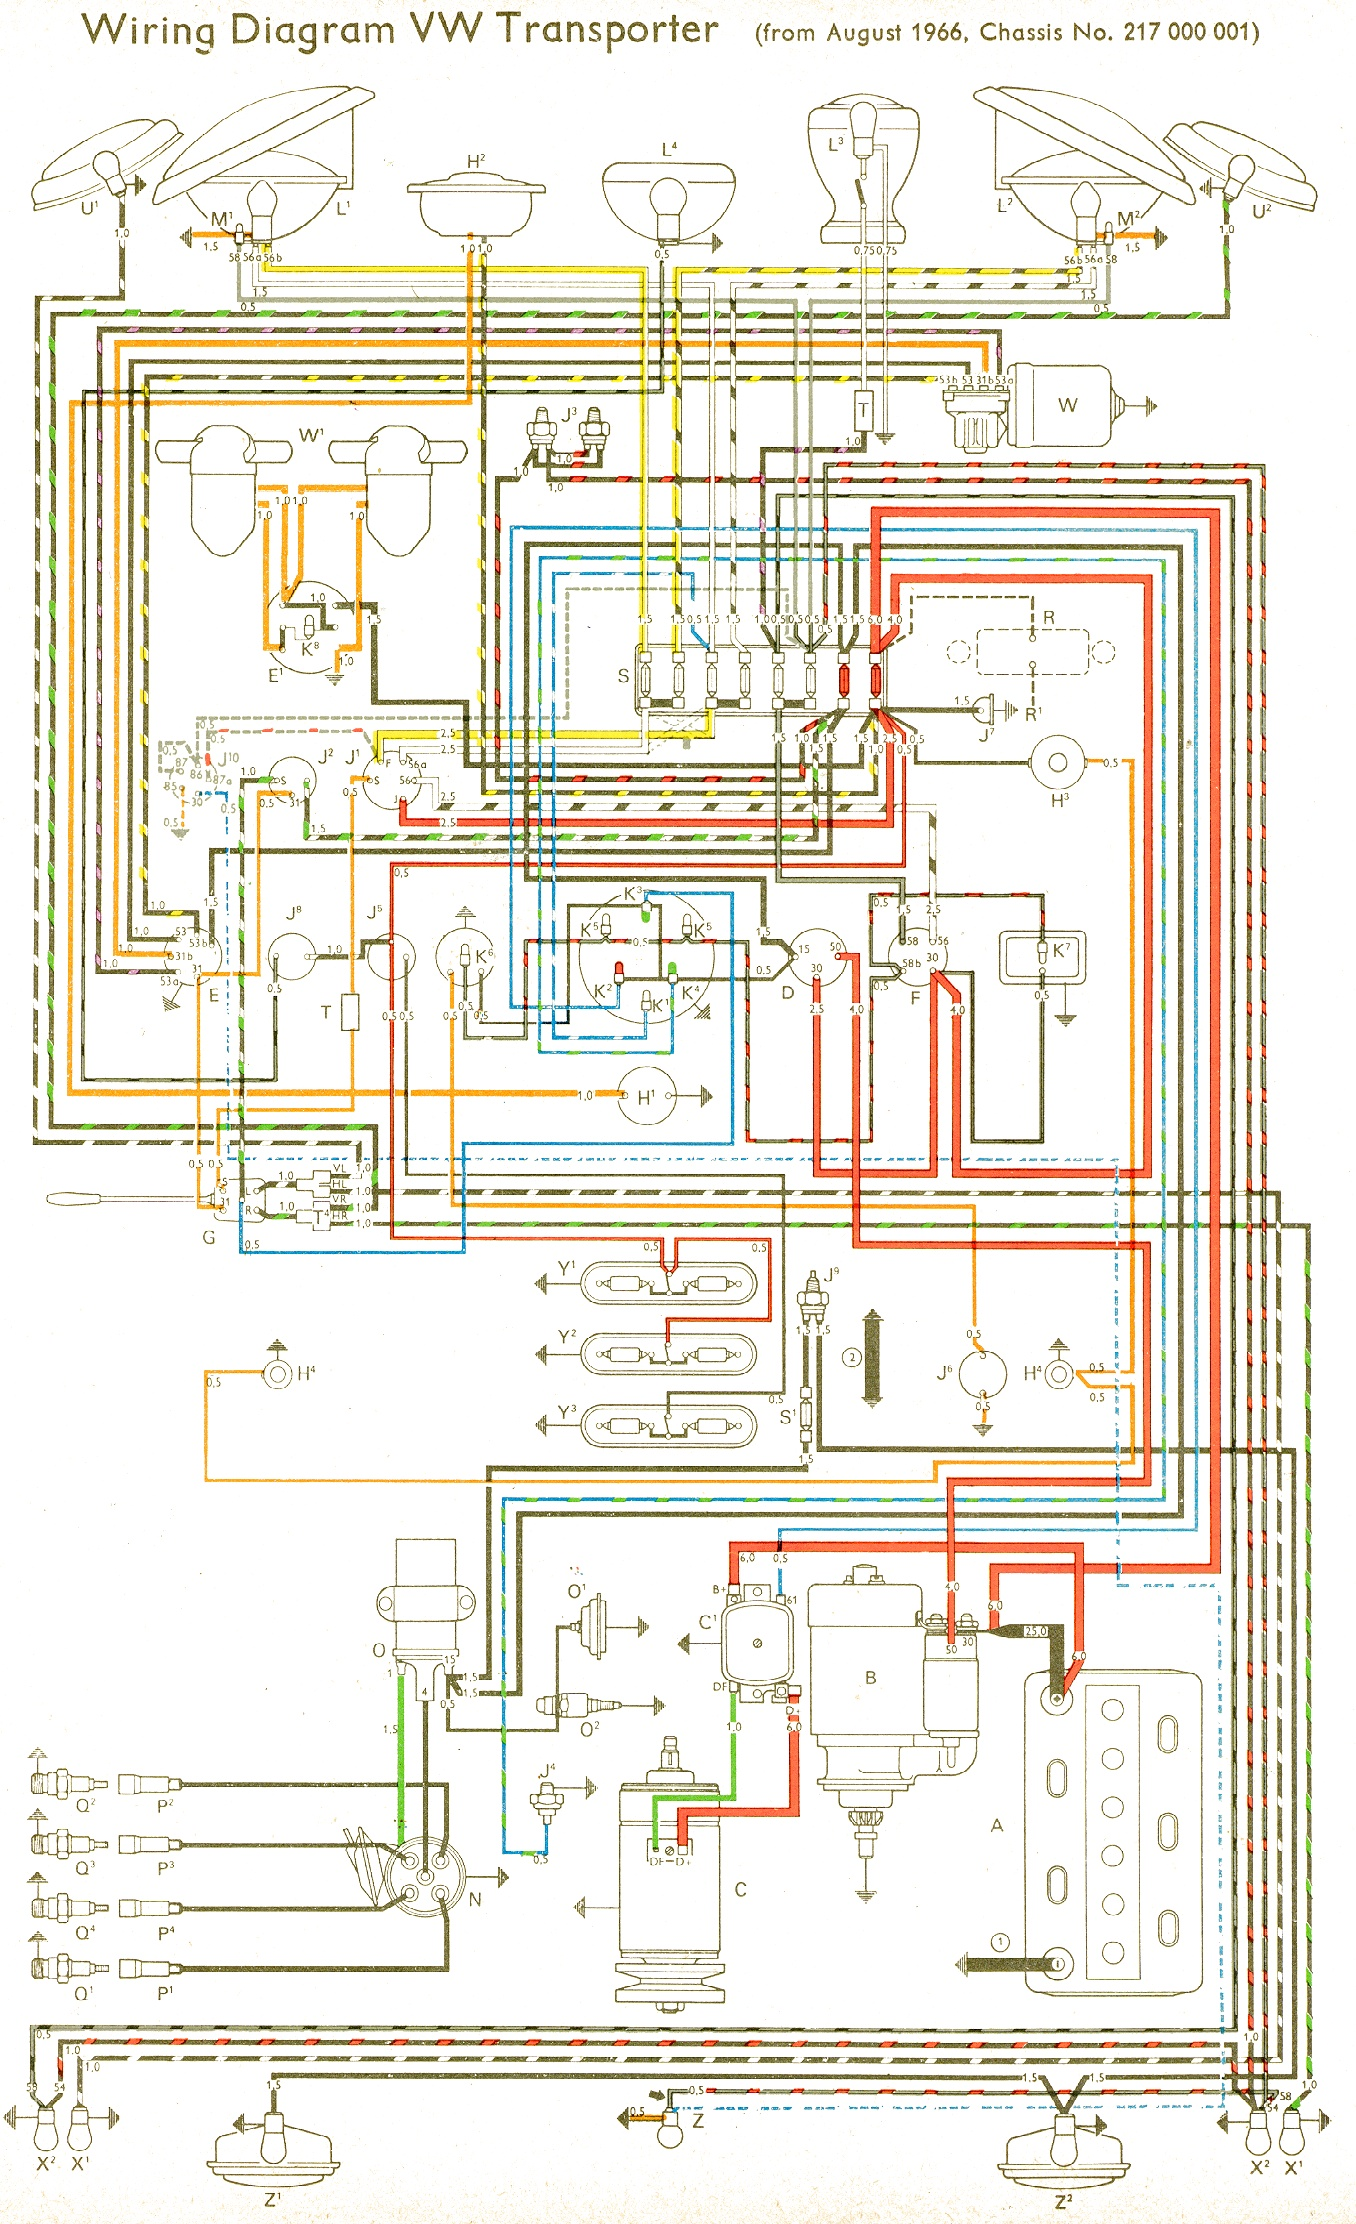 bus 66 vw wiring diagrams vw transporter t5 fuse box diagram at bakdesigns.co